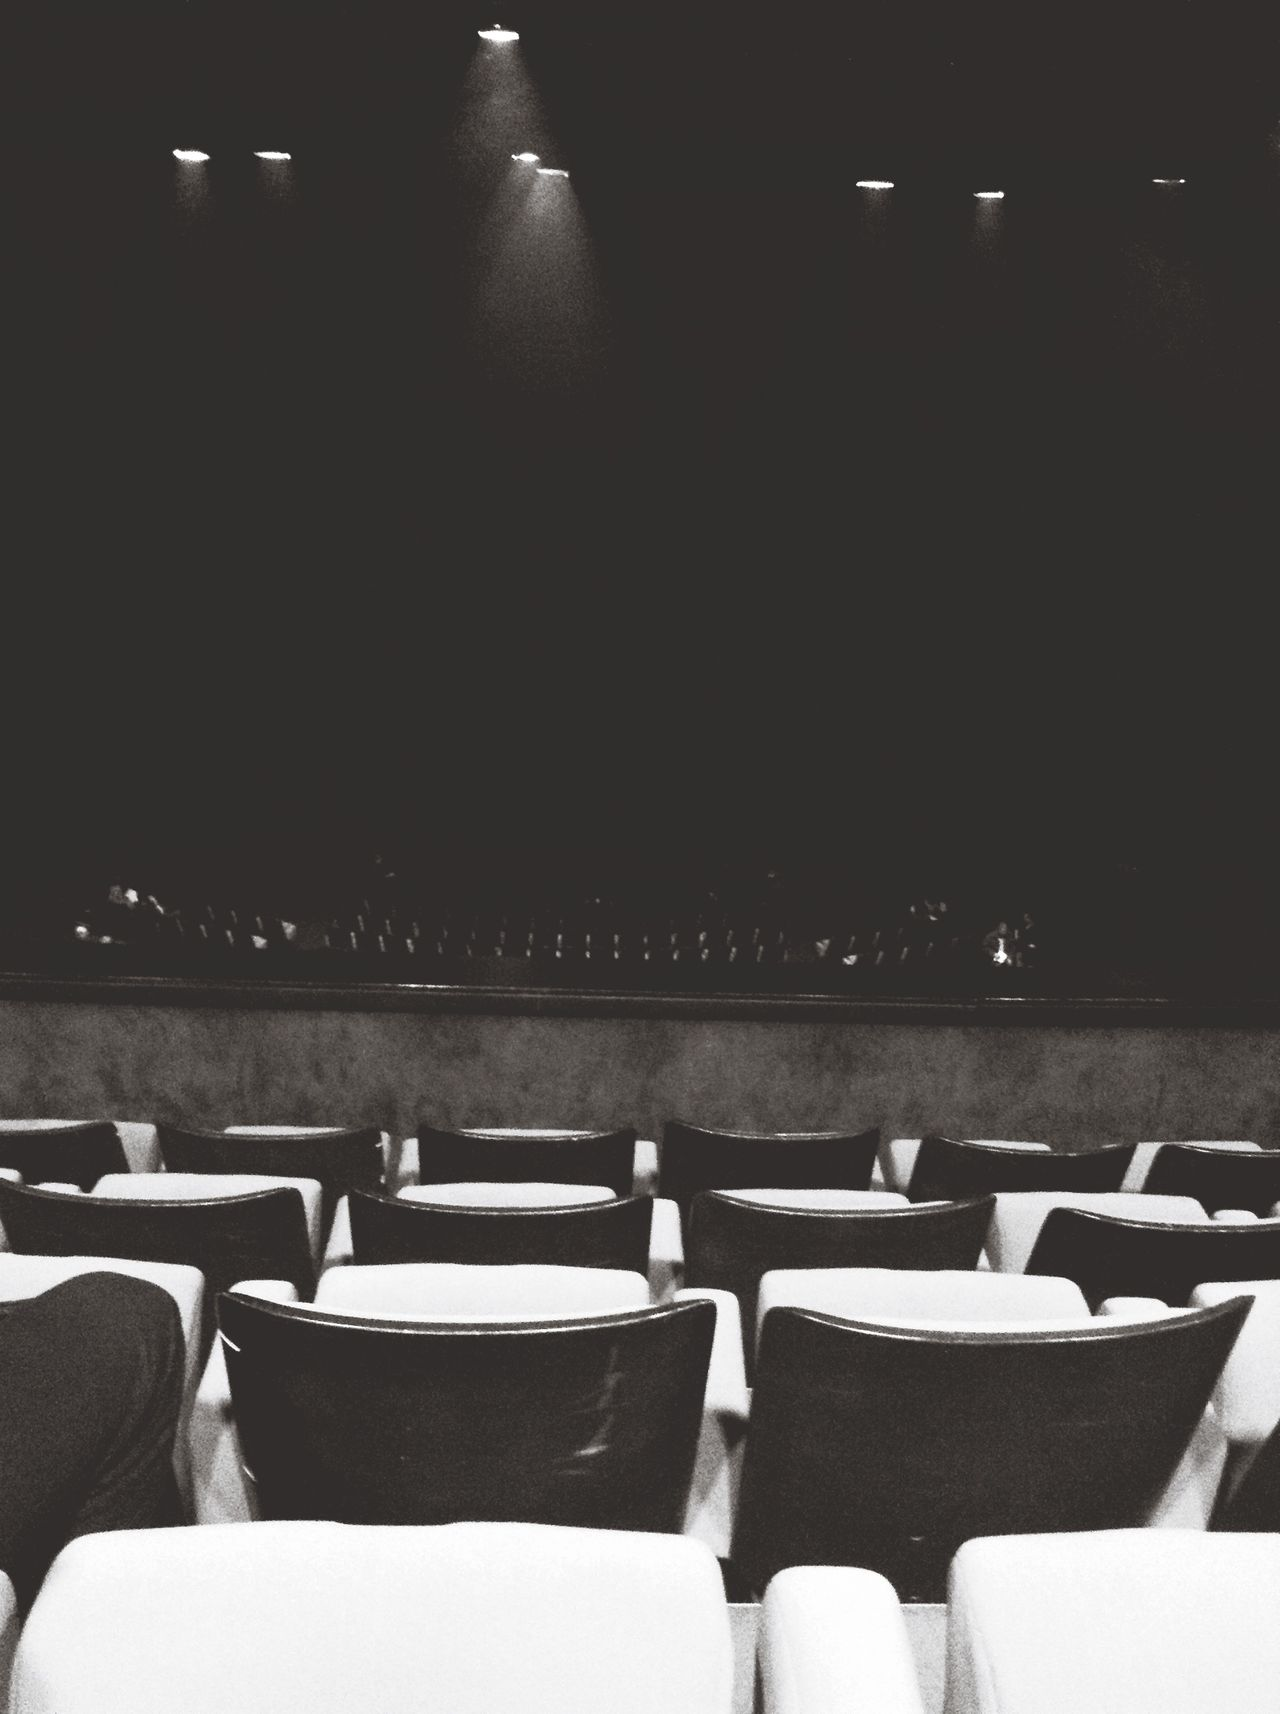 Youhouuuuu !! Alexandre Astier Exoconference Enjoying Life Hanging Out Theater Empty Places Blackandwhite The Minimals (less Edit Juxt Photography) Catching A Show